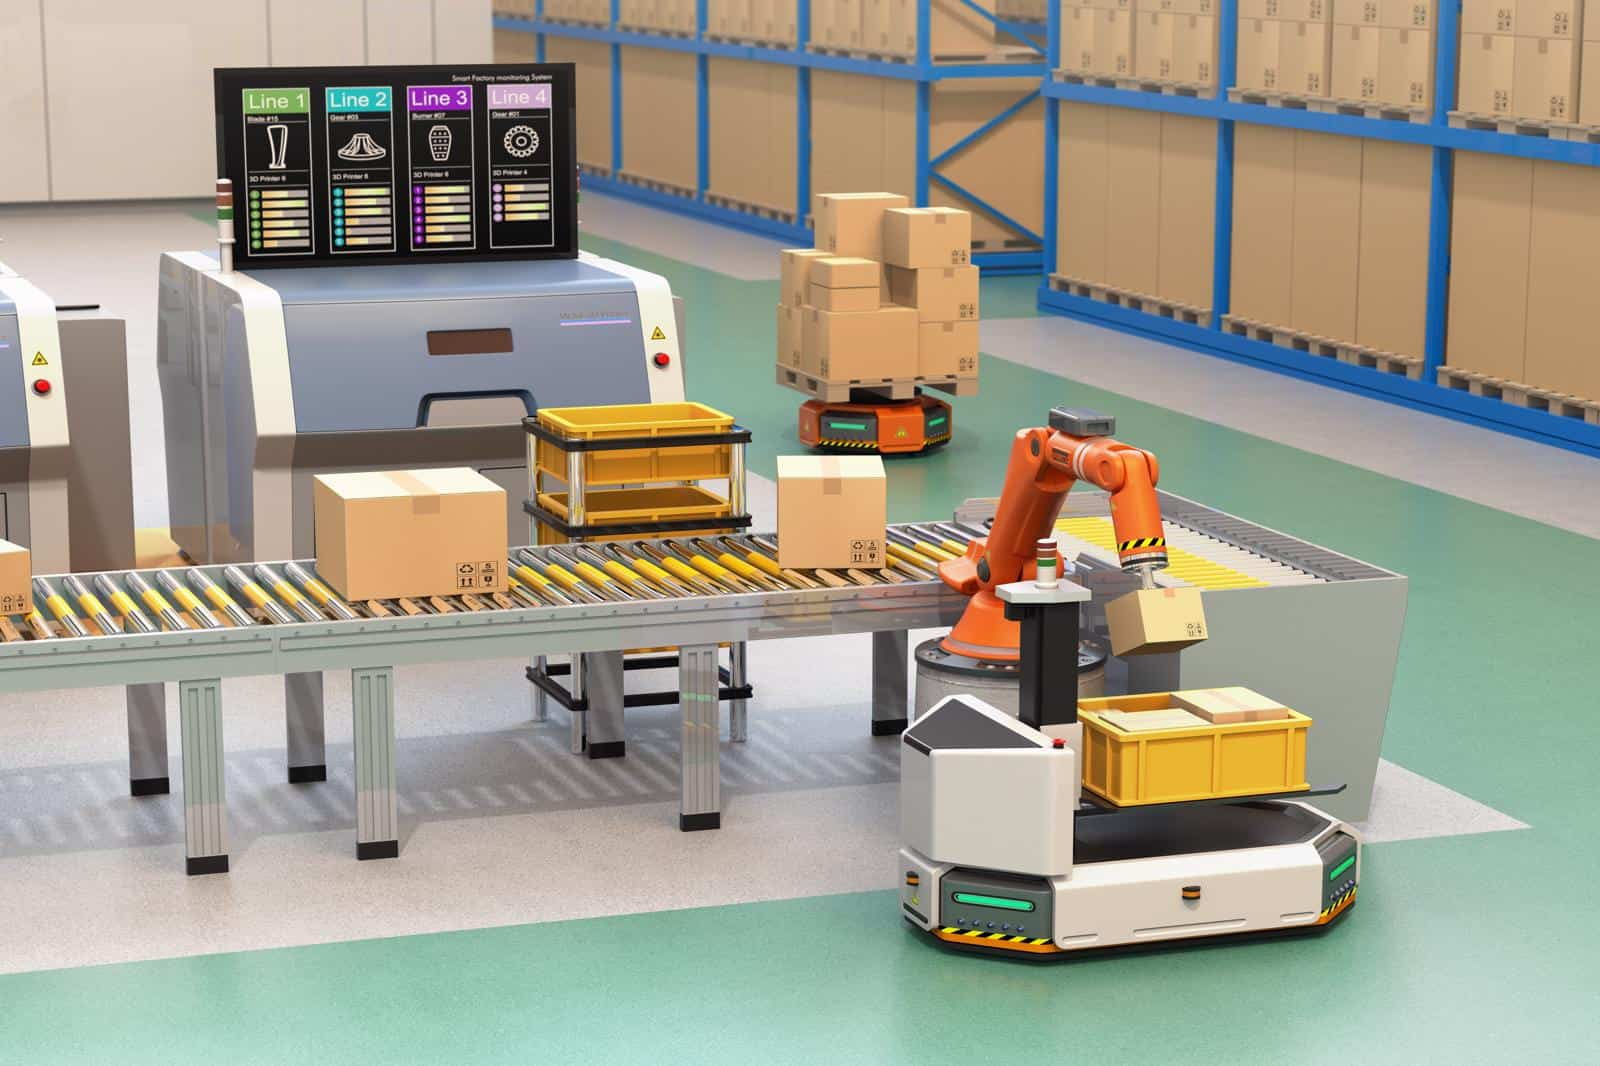 autonomous mobile robot in a smart factory